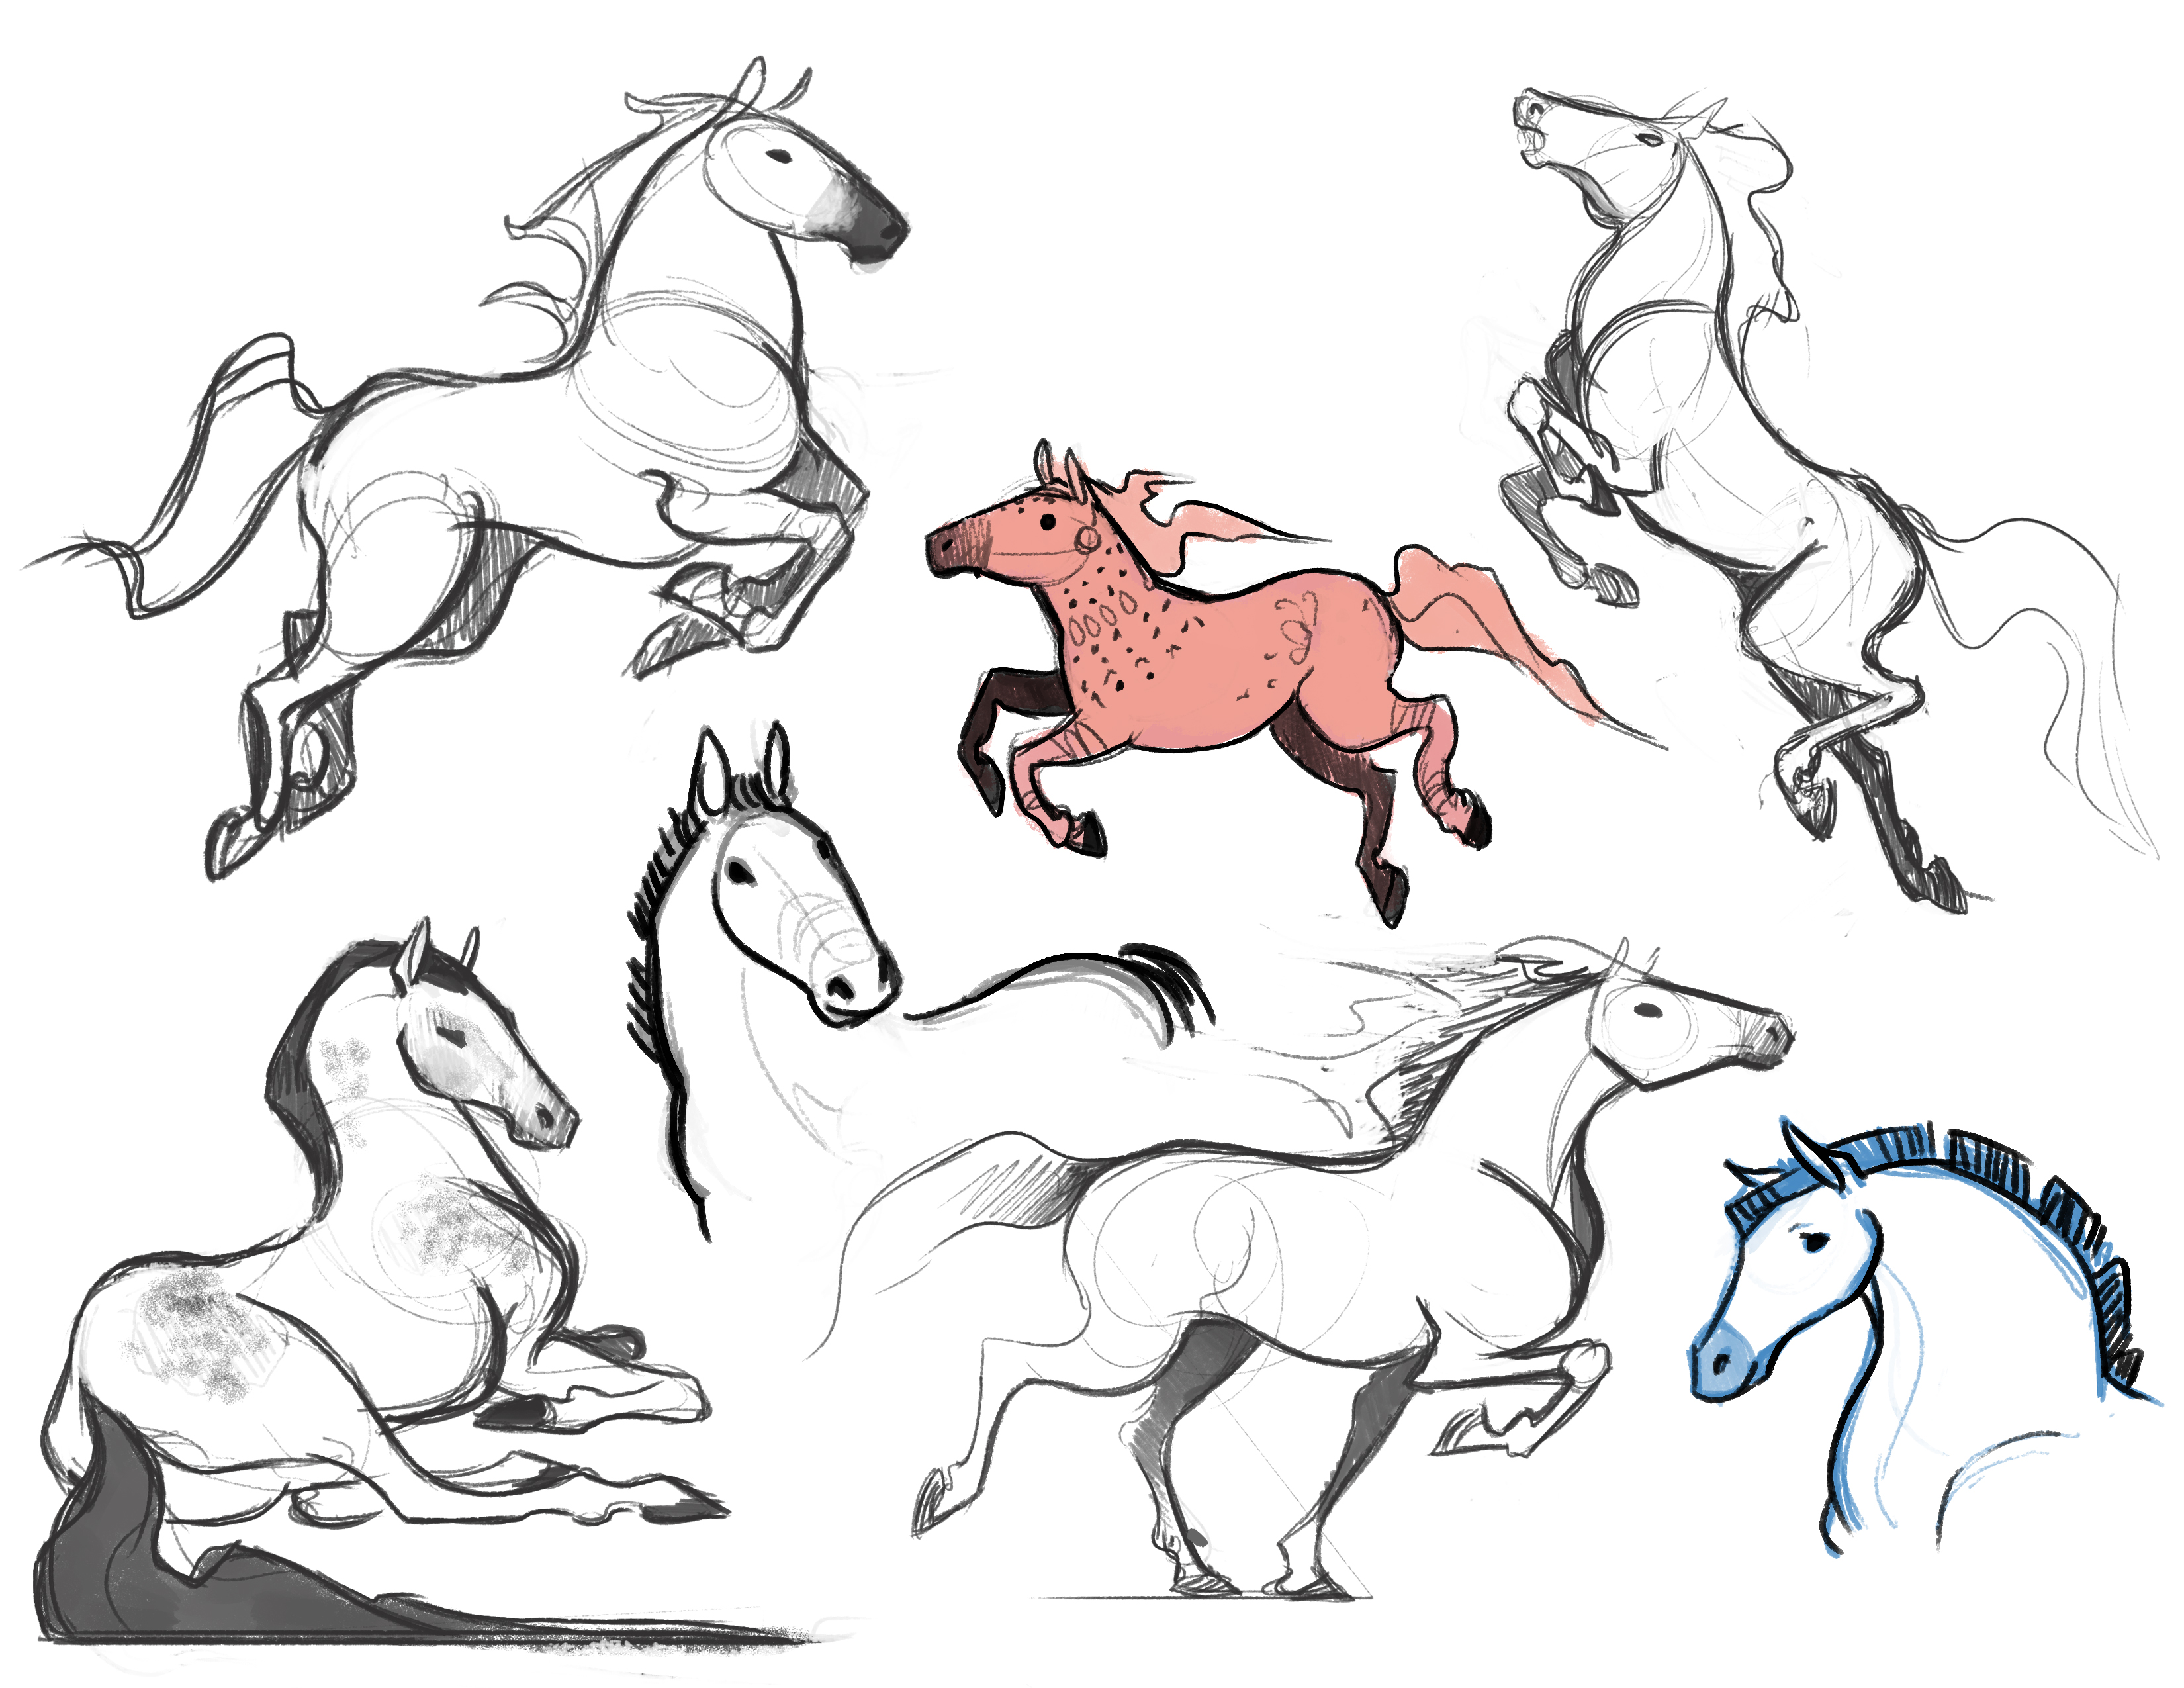 Horton_horse sketches 1